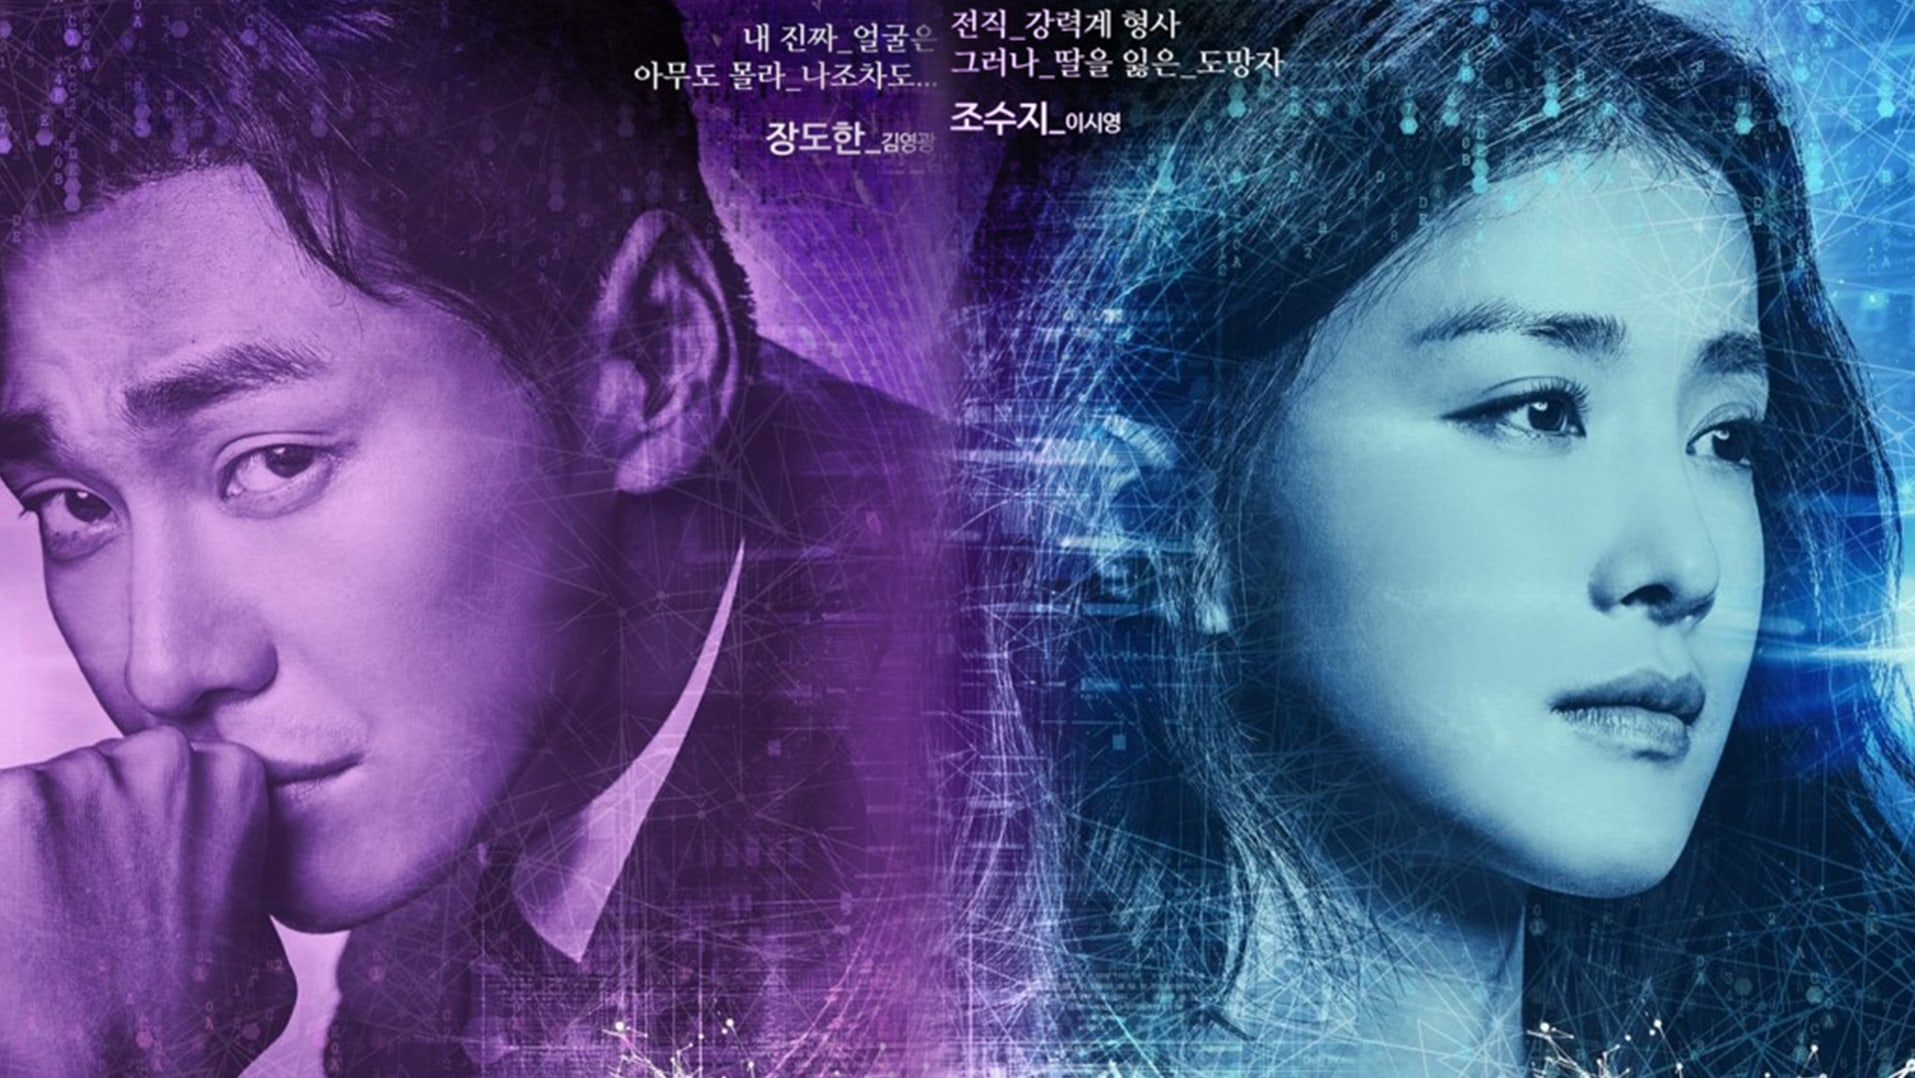 """Lookout"" Releases Intriguing Character Posters For Lee Si Young, Kim Young Kwang, And More"